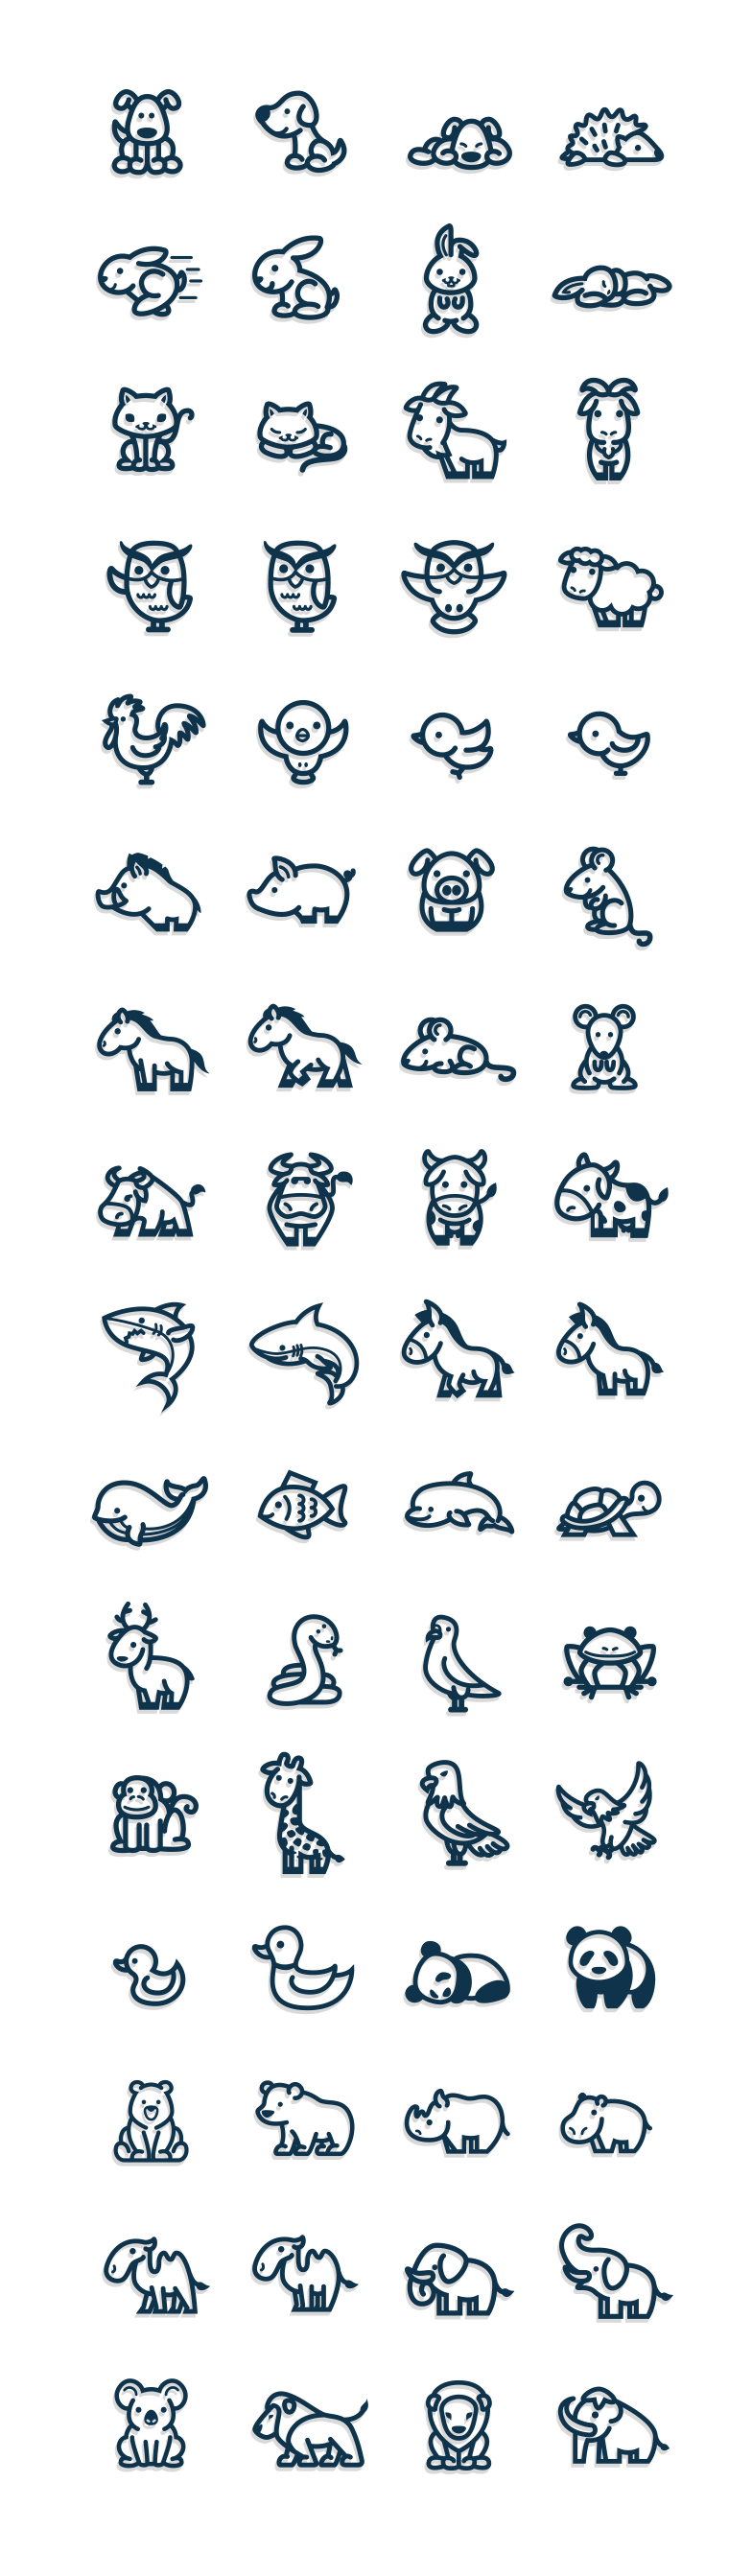 Vectorial drawing simple. Animals icon pinterest doodles